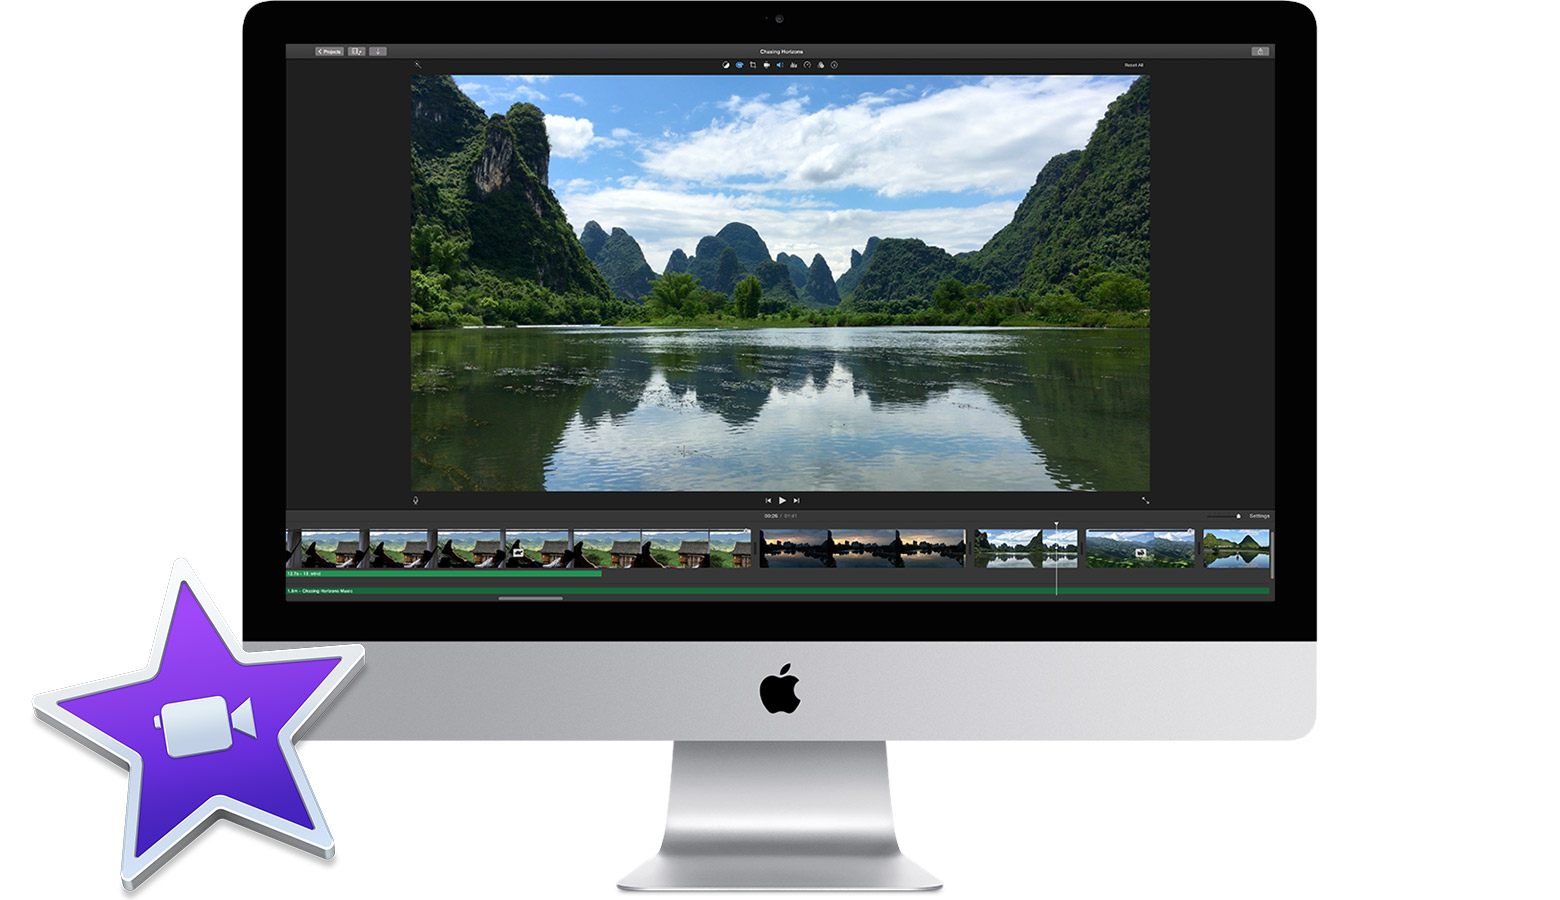 iMovie supported cameras